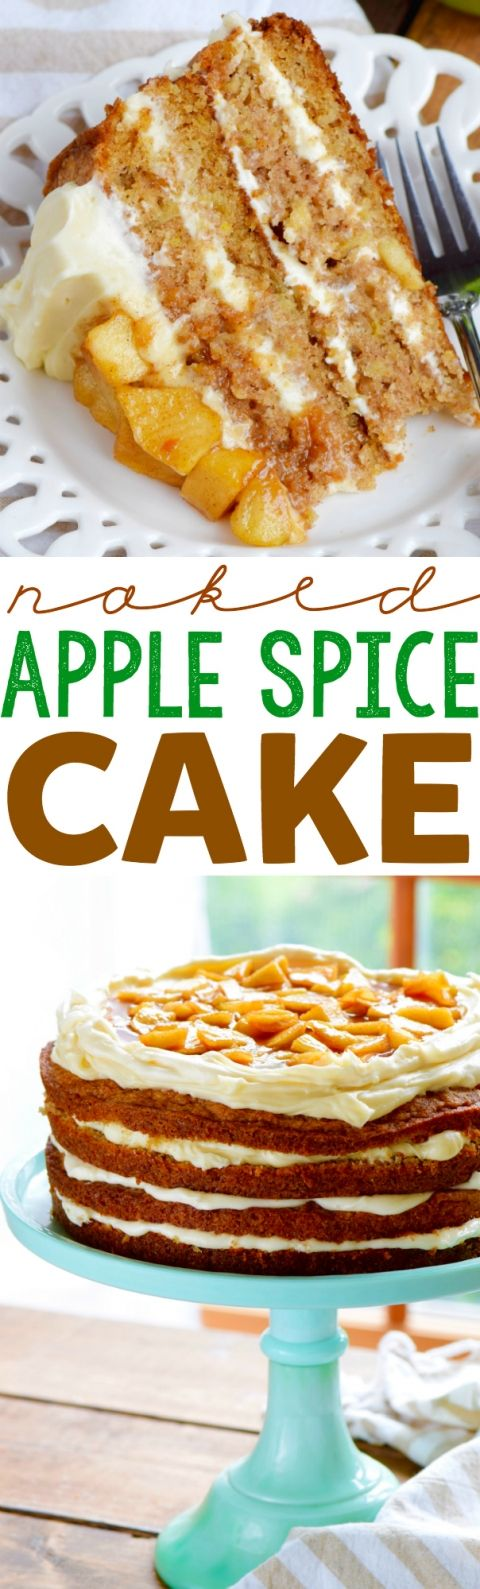 This Naked Apple Spice Cake is full of the most delicious apple and spice flavor and is so moist! Perfect for even a beginning baker!